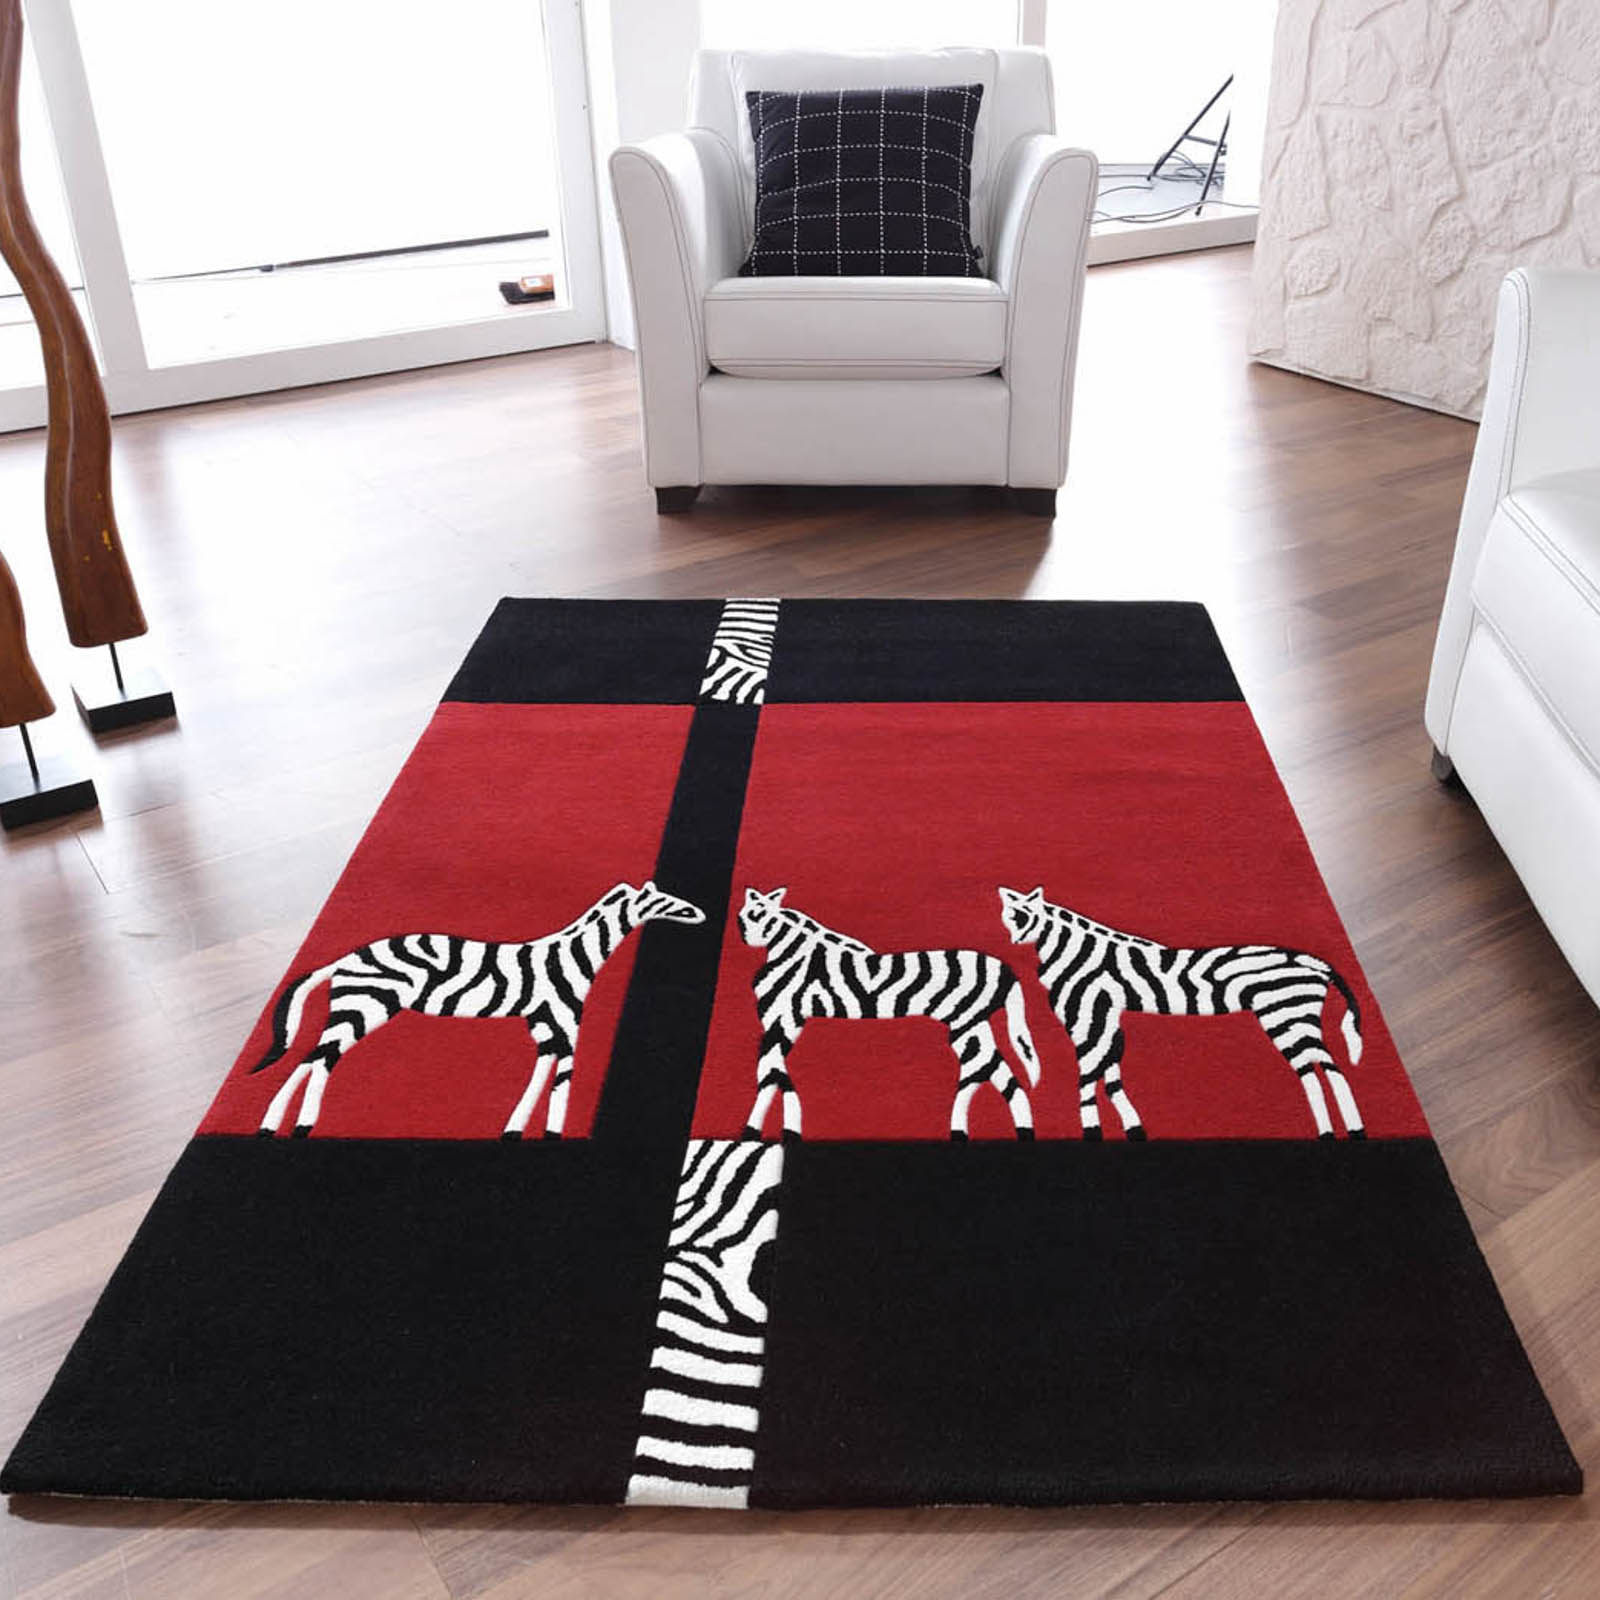 Kalahari Zebra Rugs in Black and Red